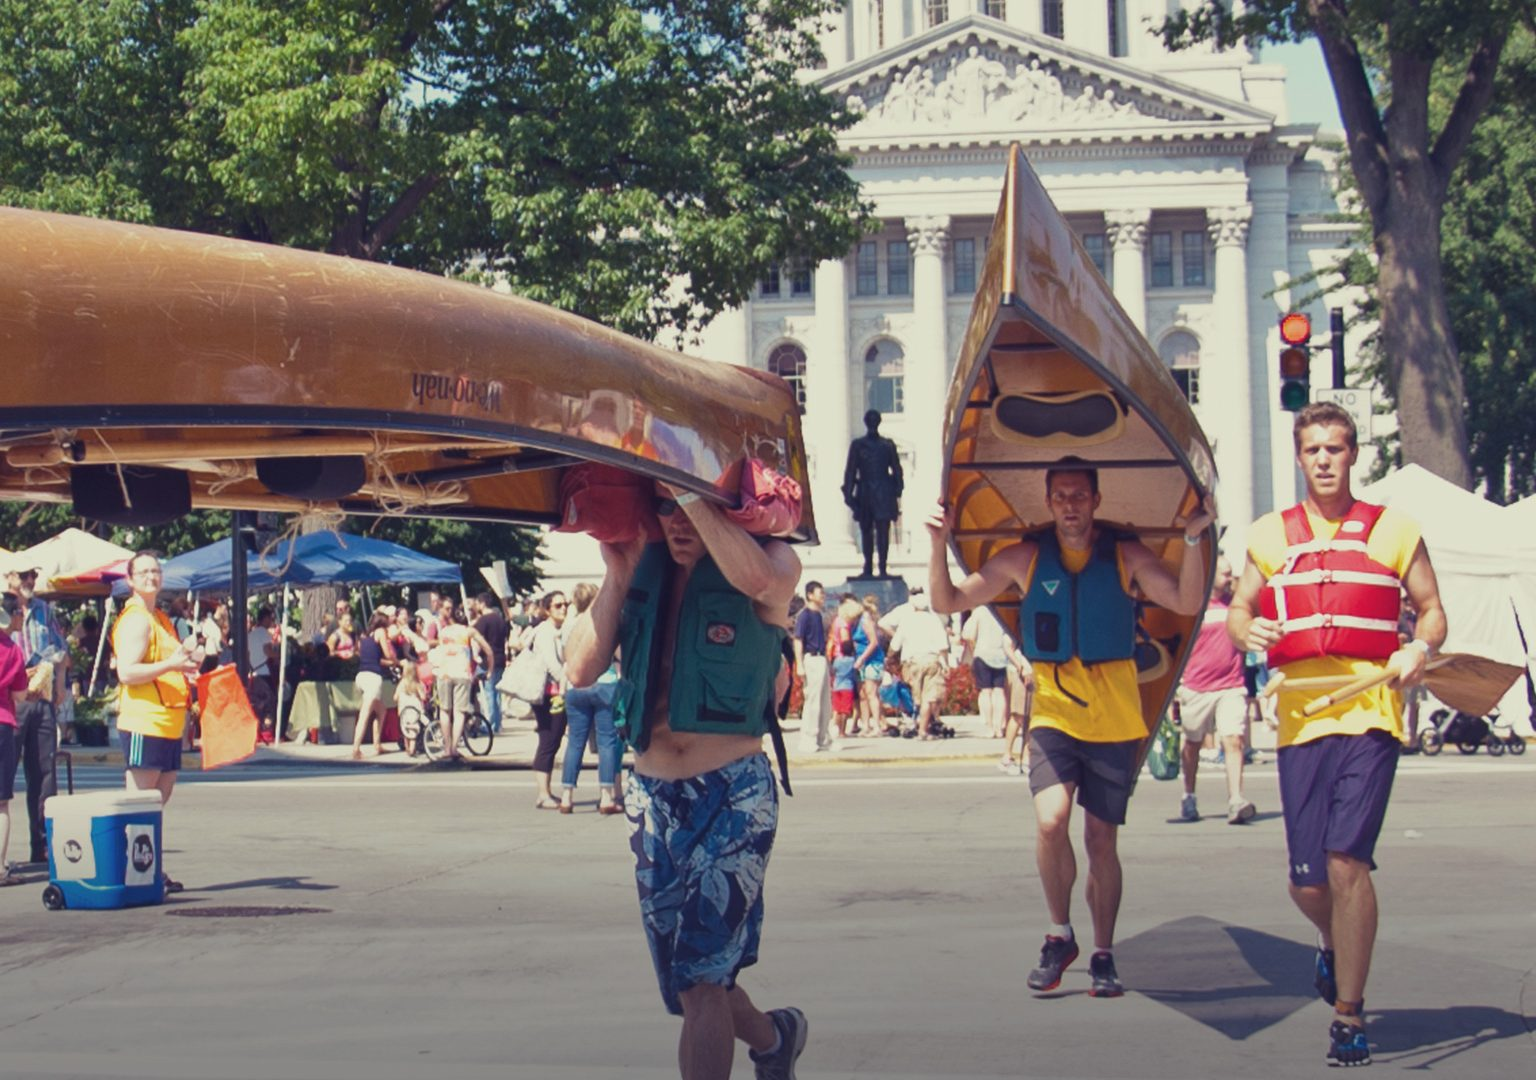 Race participants carrying canoes over their heads running across street with Capitol building in background